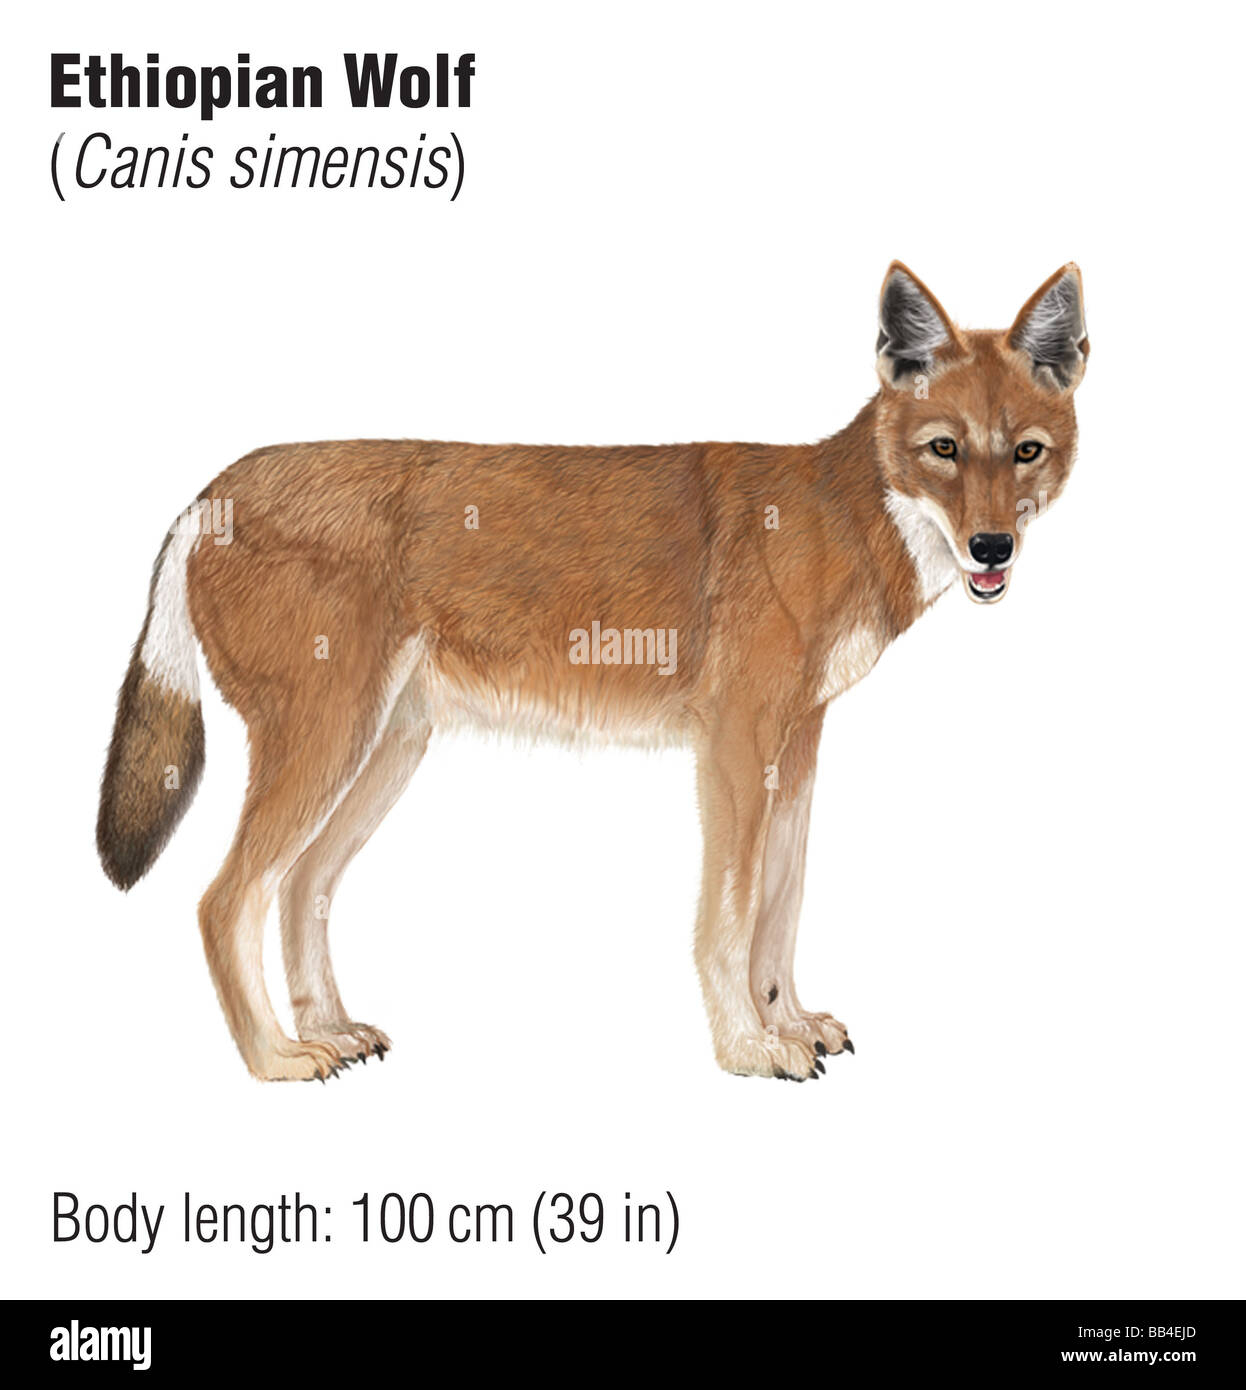 Ethiopian wolf (Canis simensis), an endangered species - Stock Image